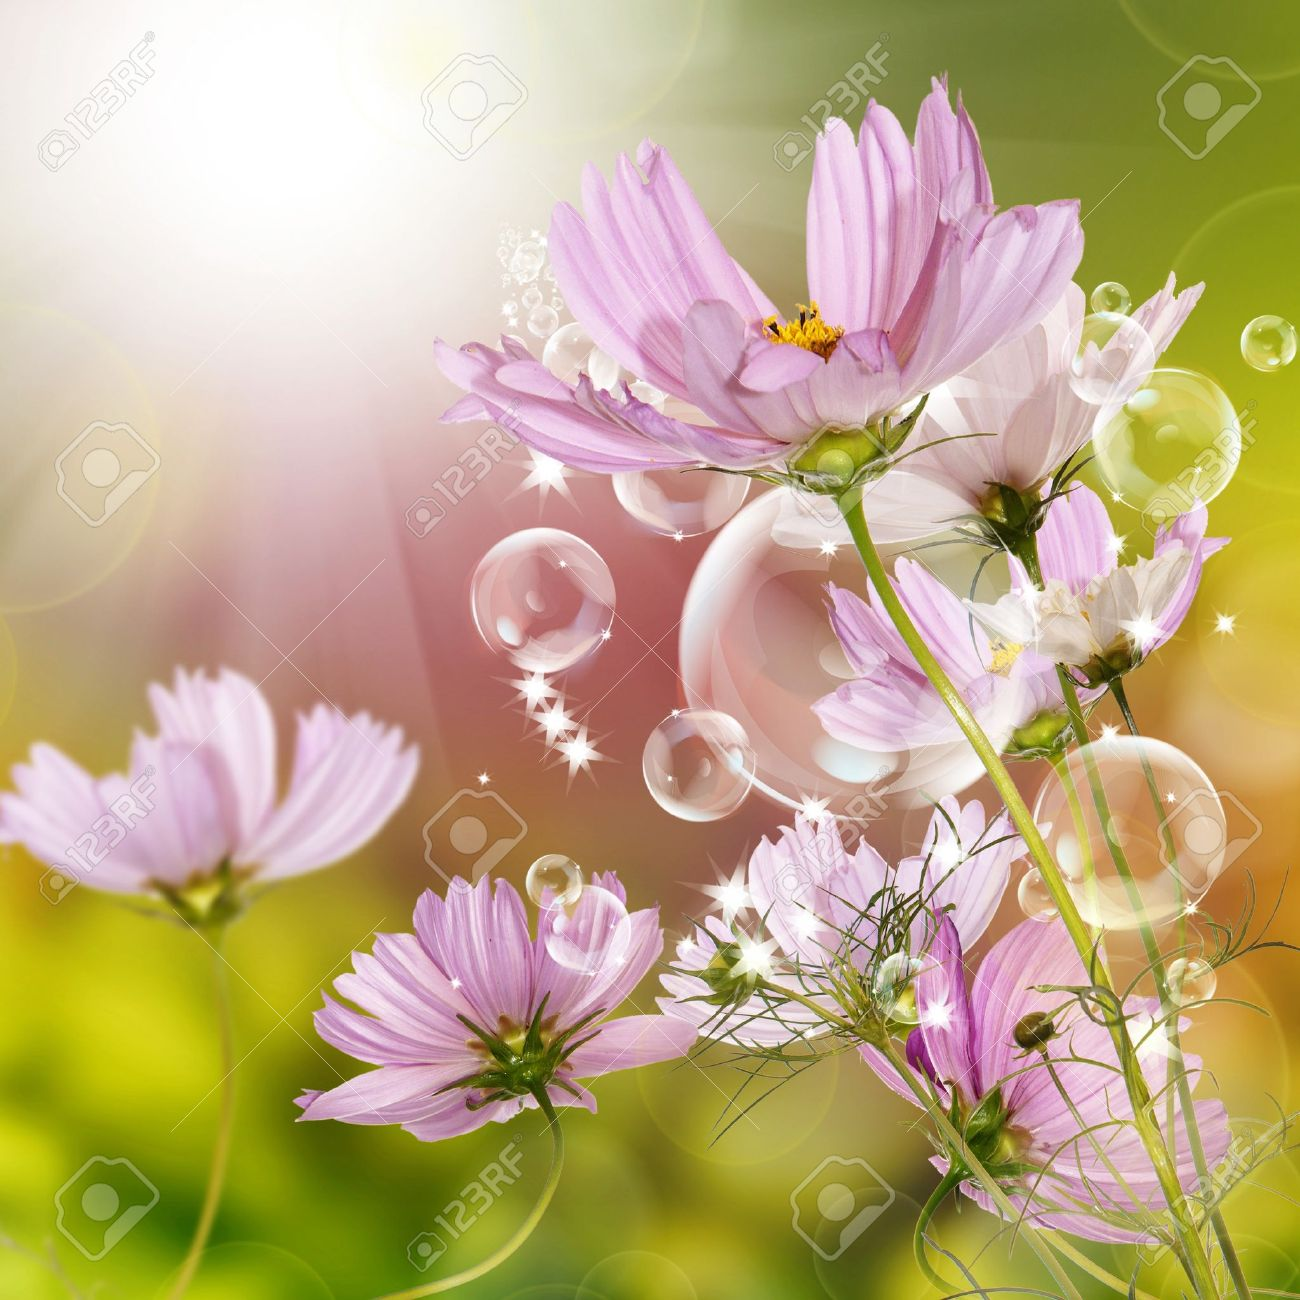 Flower Garden Beautiful Design Stock Photo Picture And Royalty. Beautiful Designs